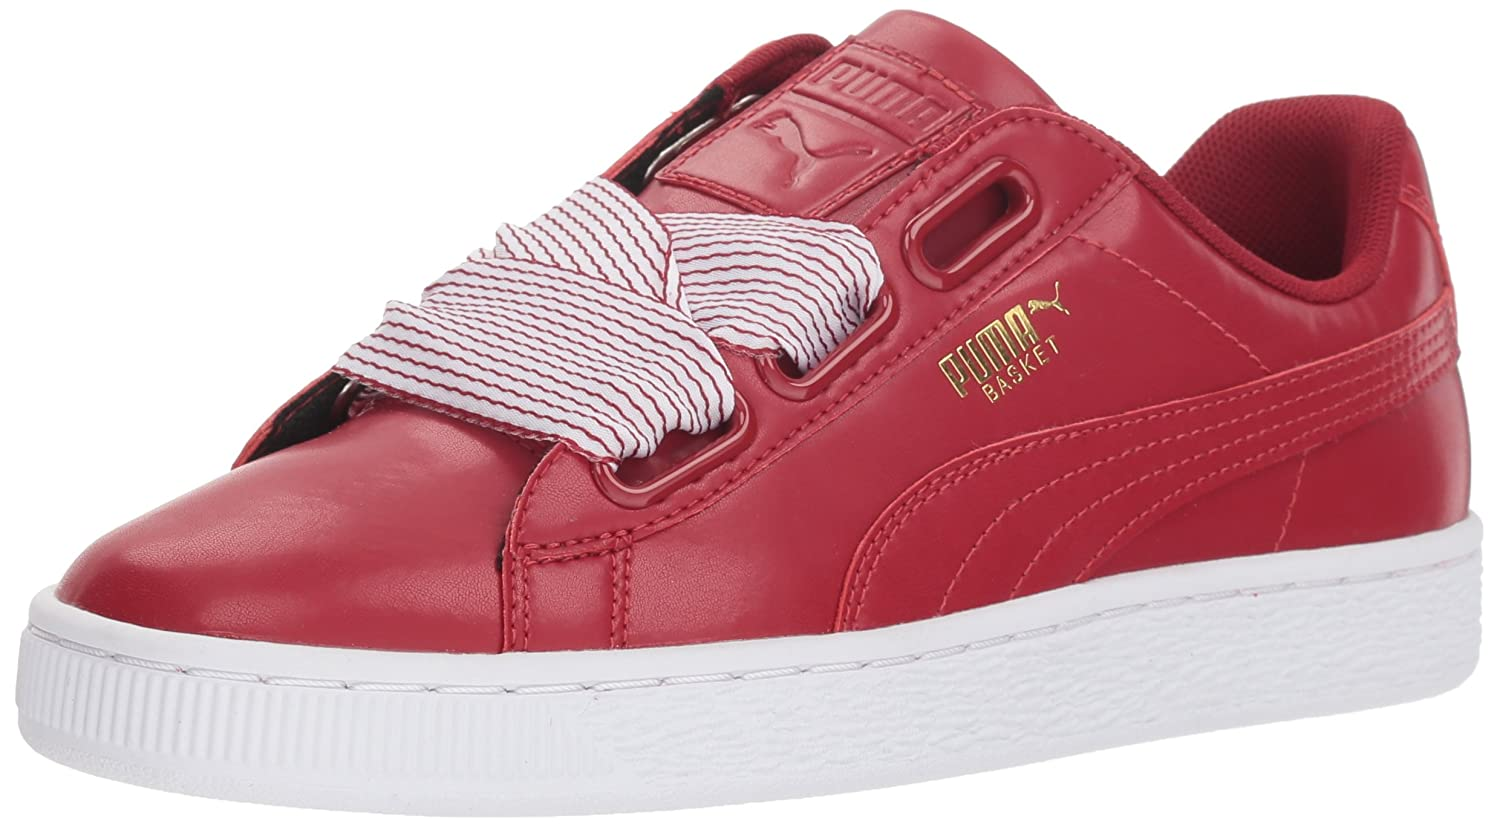 low priced c36fb 15fc2 PUMA Women's Basket Heart Wn Sneaker